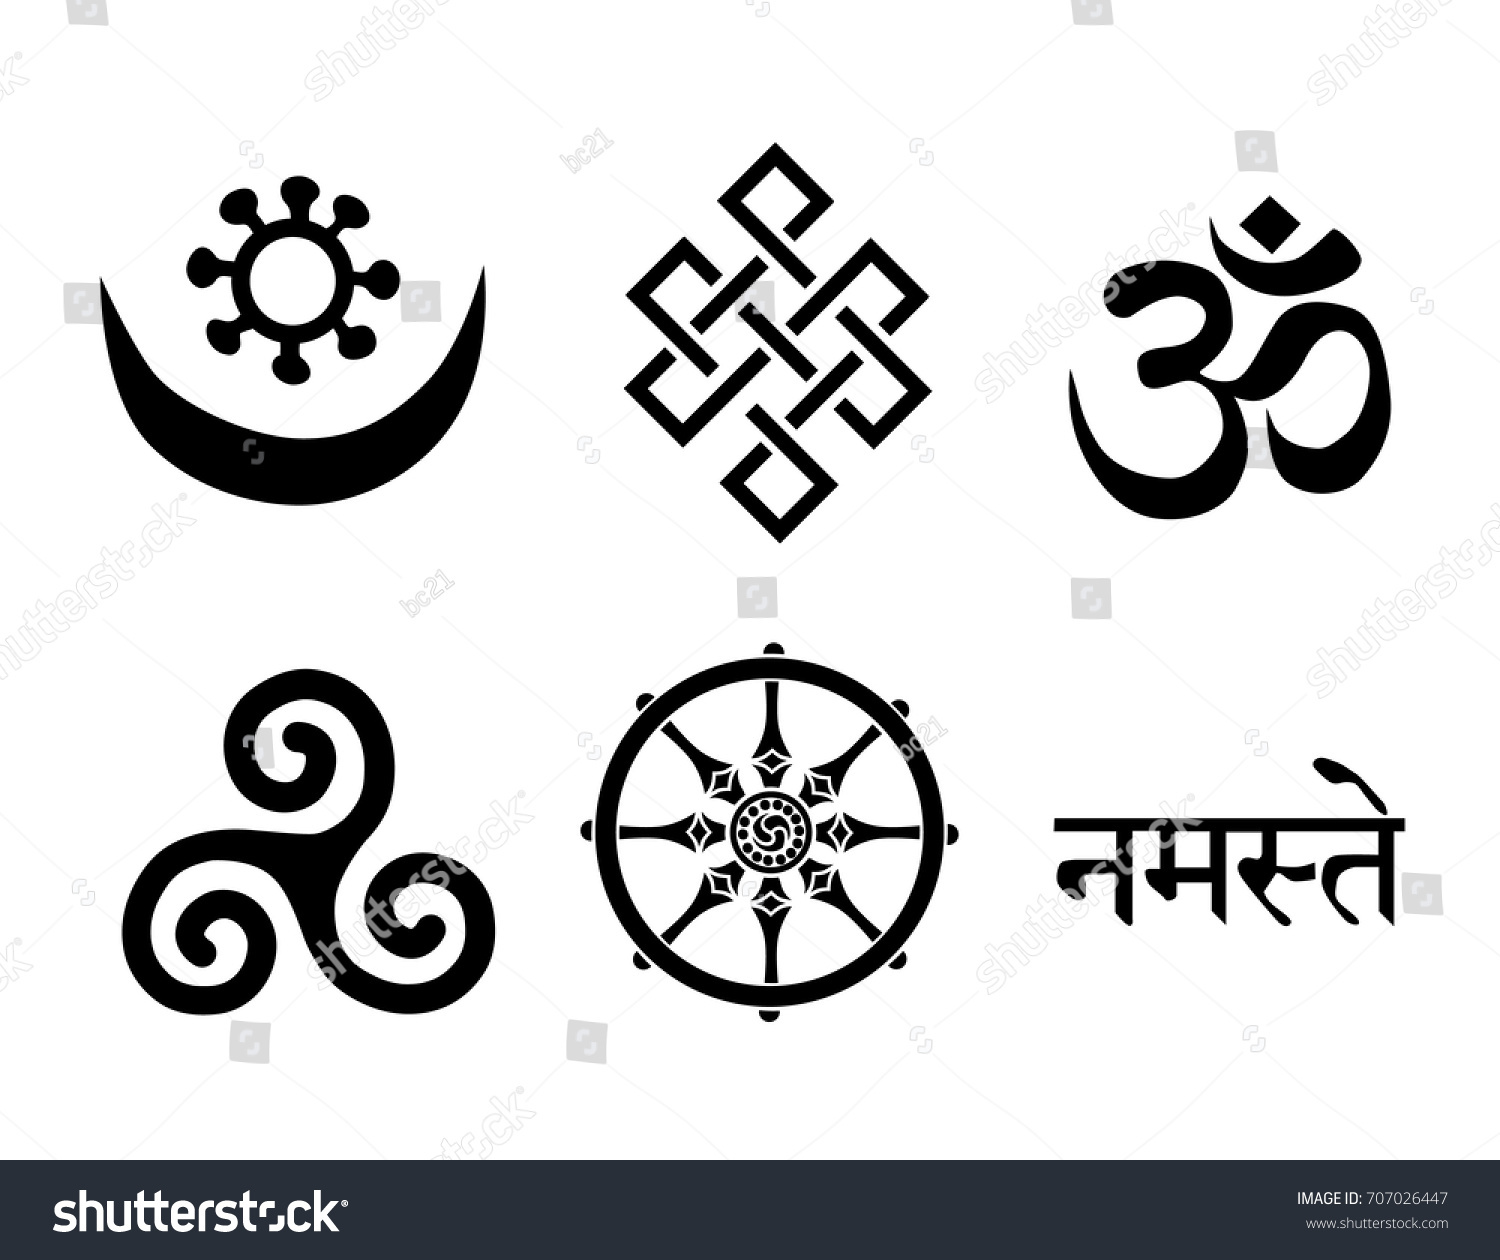 Buddhist symbols you can use this stock vector 707026447 buddhist symbols you can use this signs to create logo design wall art biocorpaavc